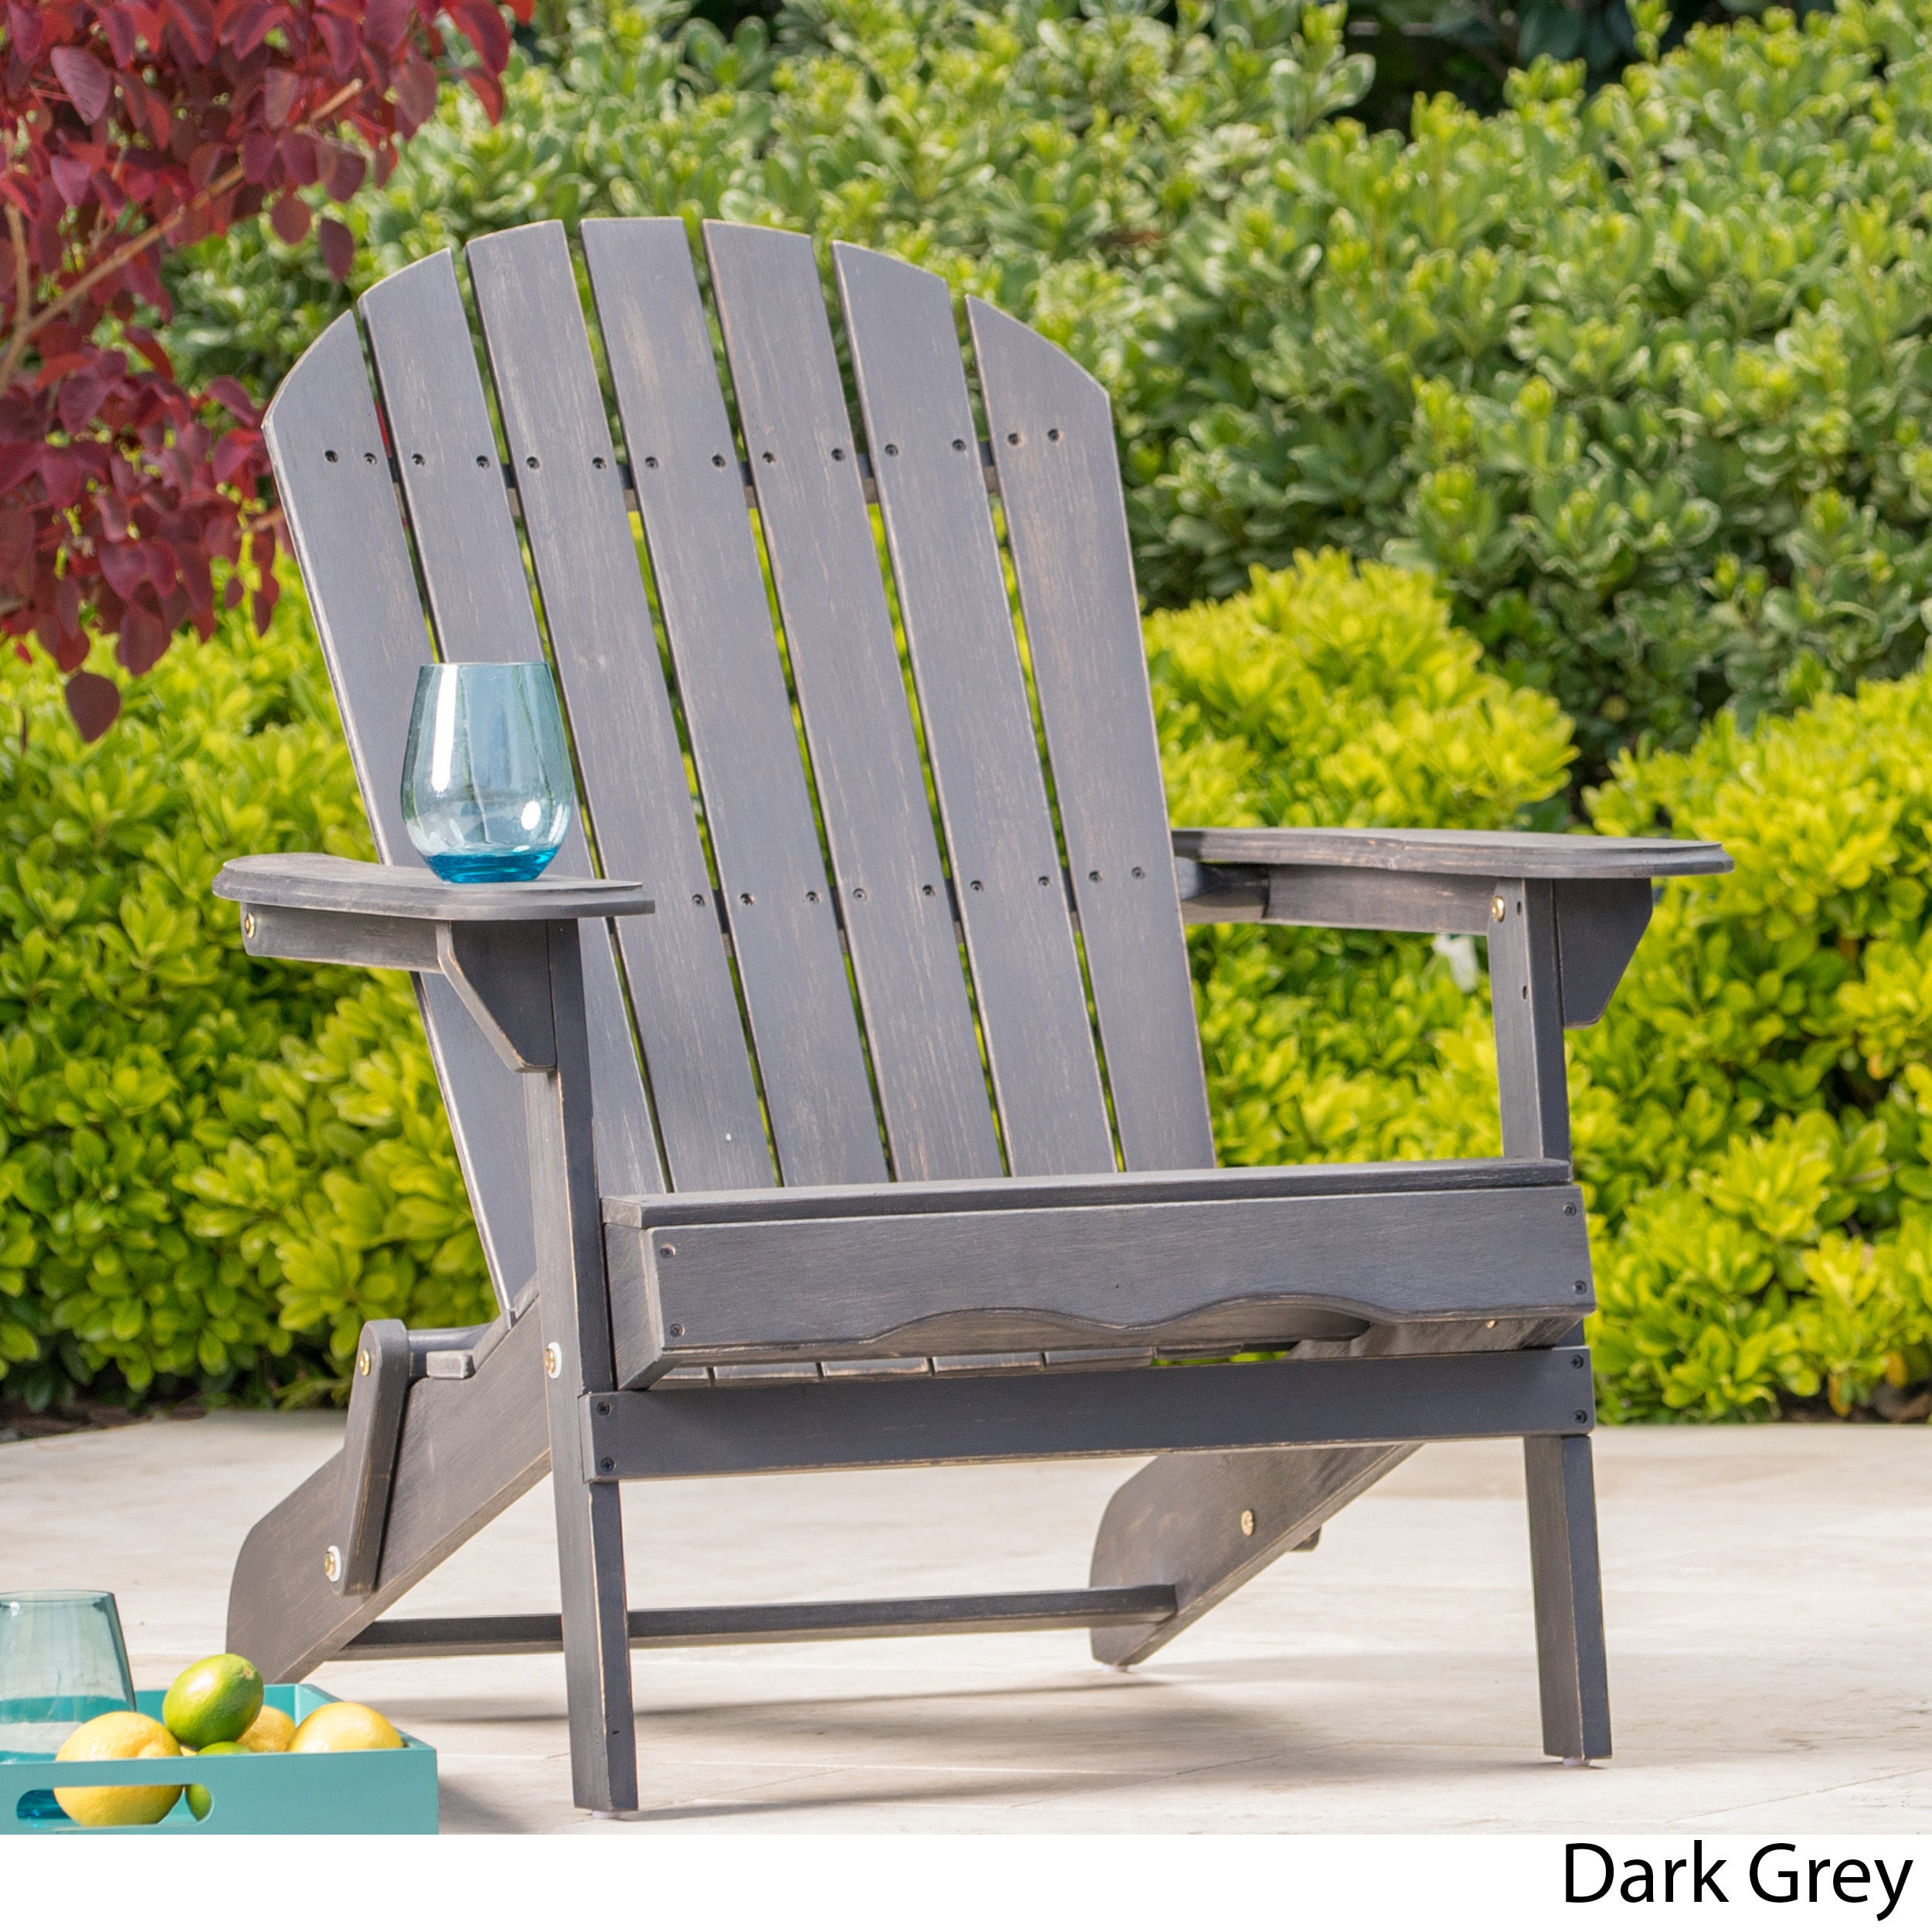 chair port outdoor adirondack reviews margaritaville wood chairs wayfair indecision pdx of